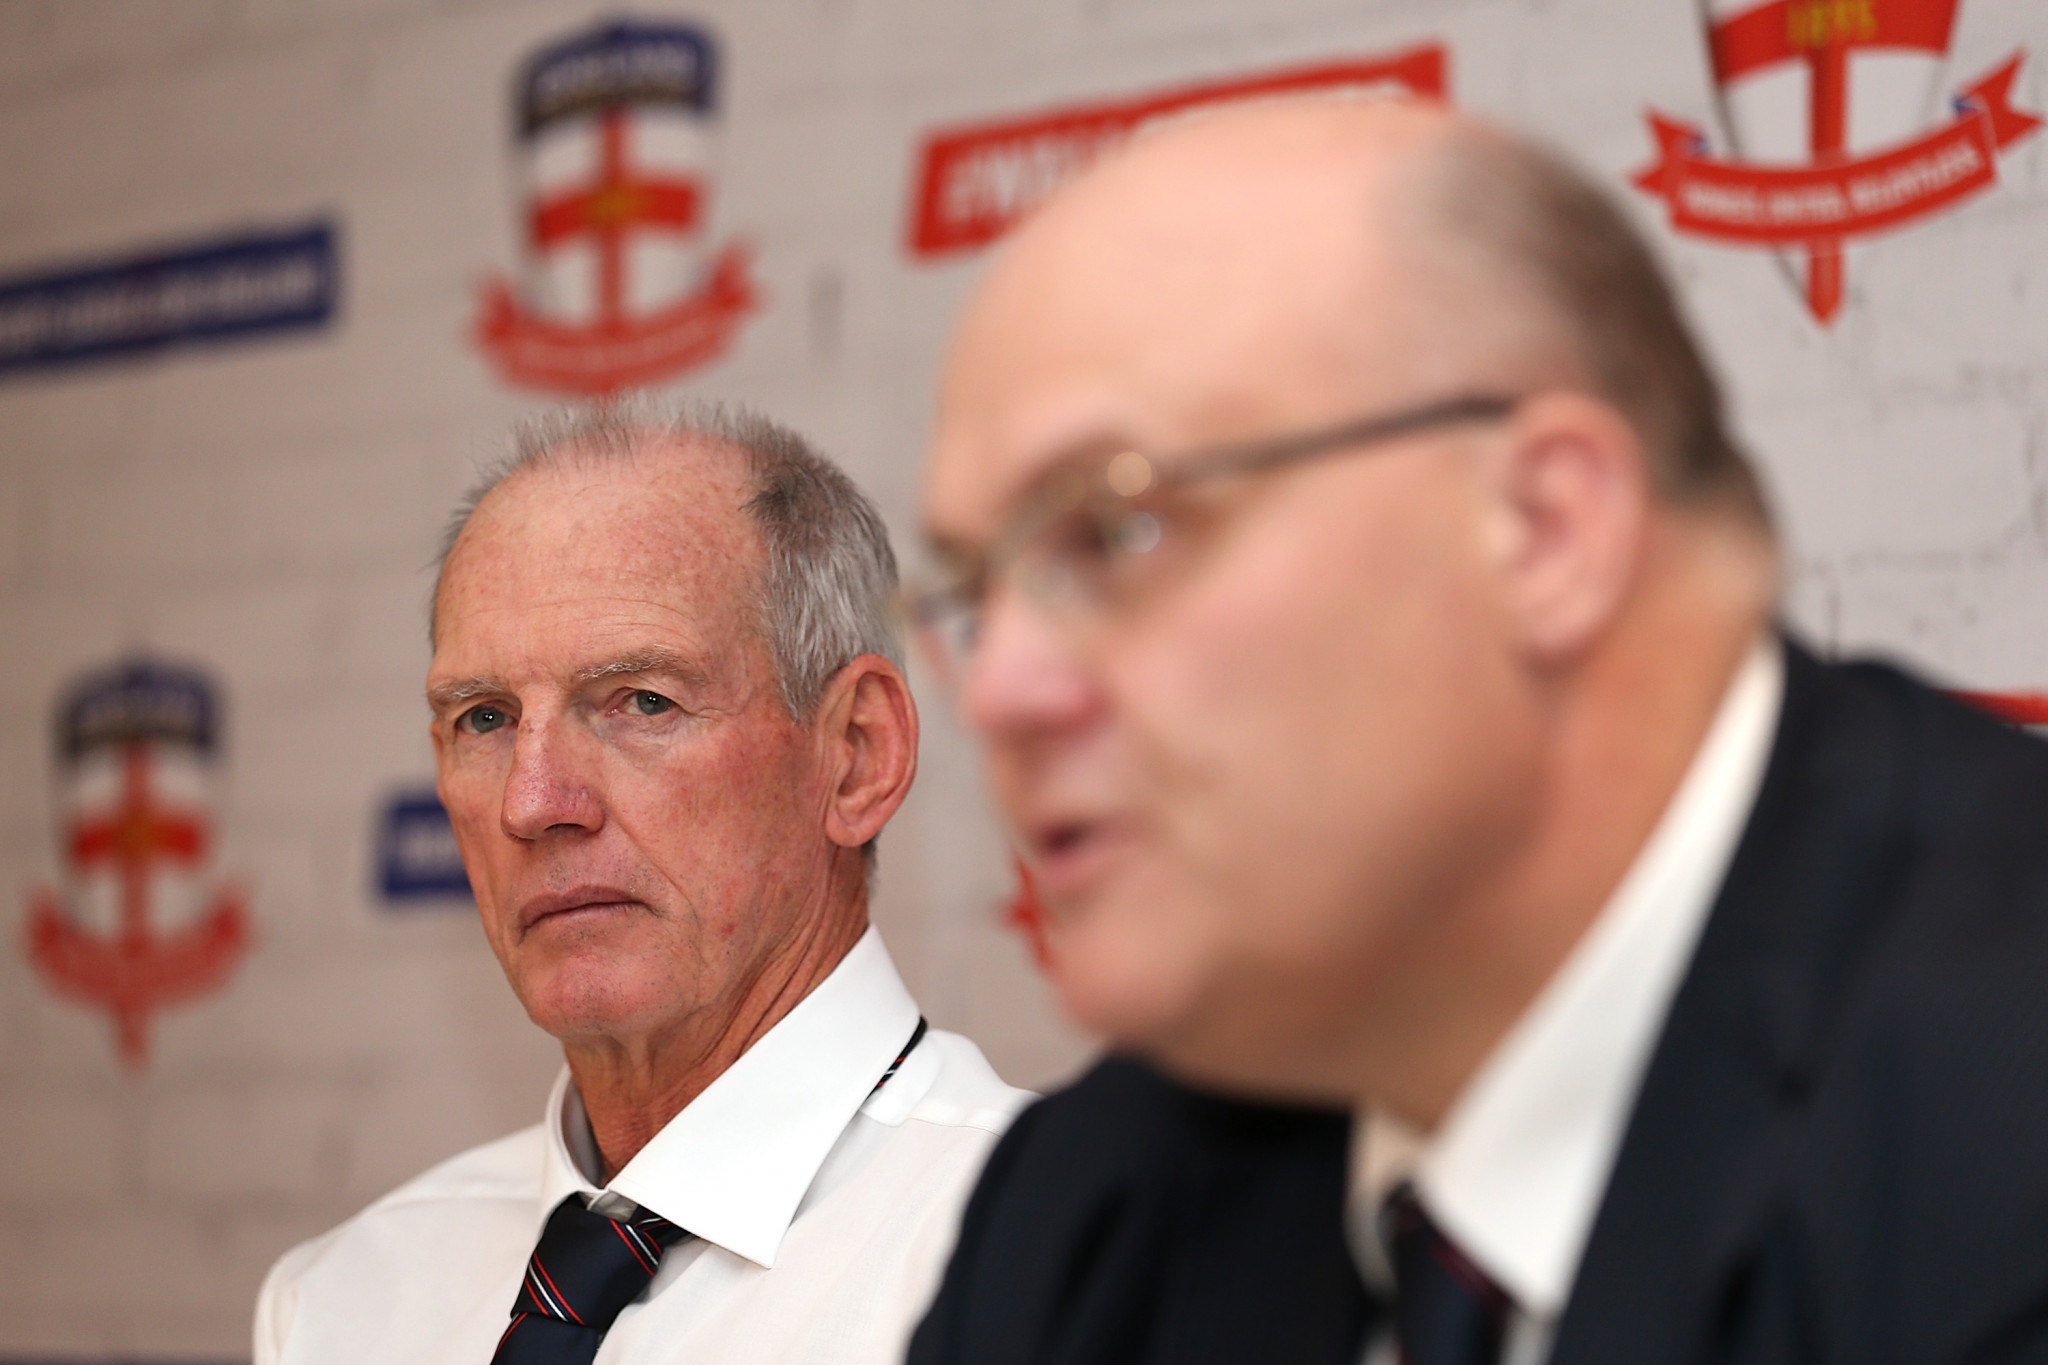 Nigel Wood, right, chairman, Rugby League International Federation, has paid tribute to David Collier who steps down as chief executive next May ©Getty Images